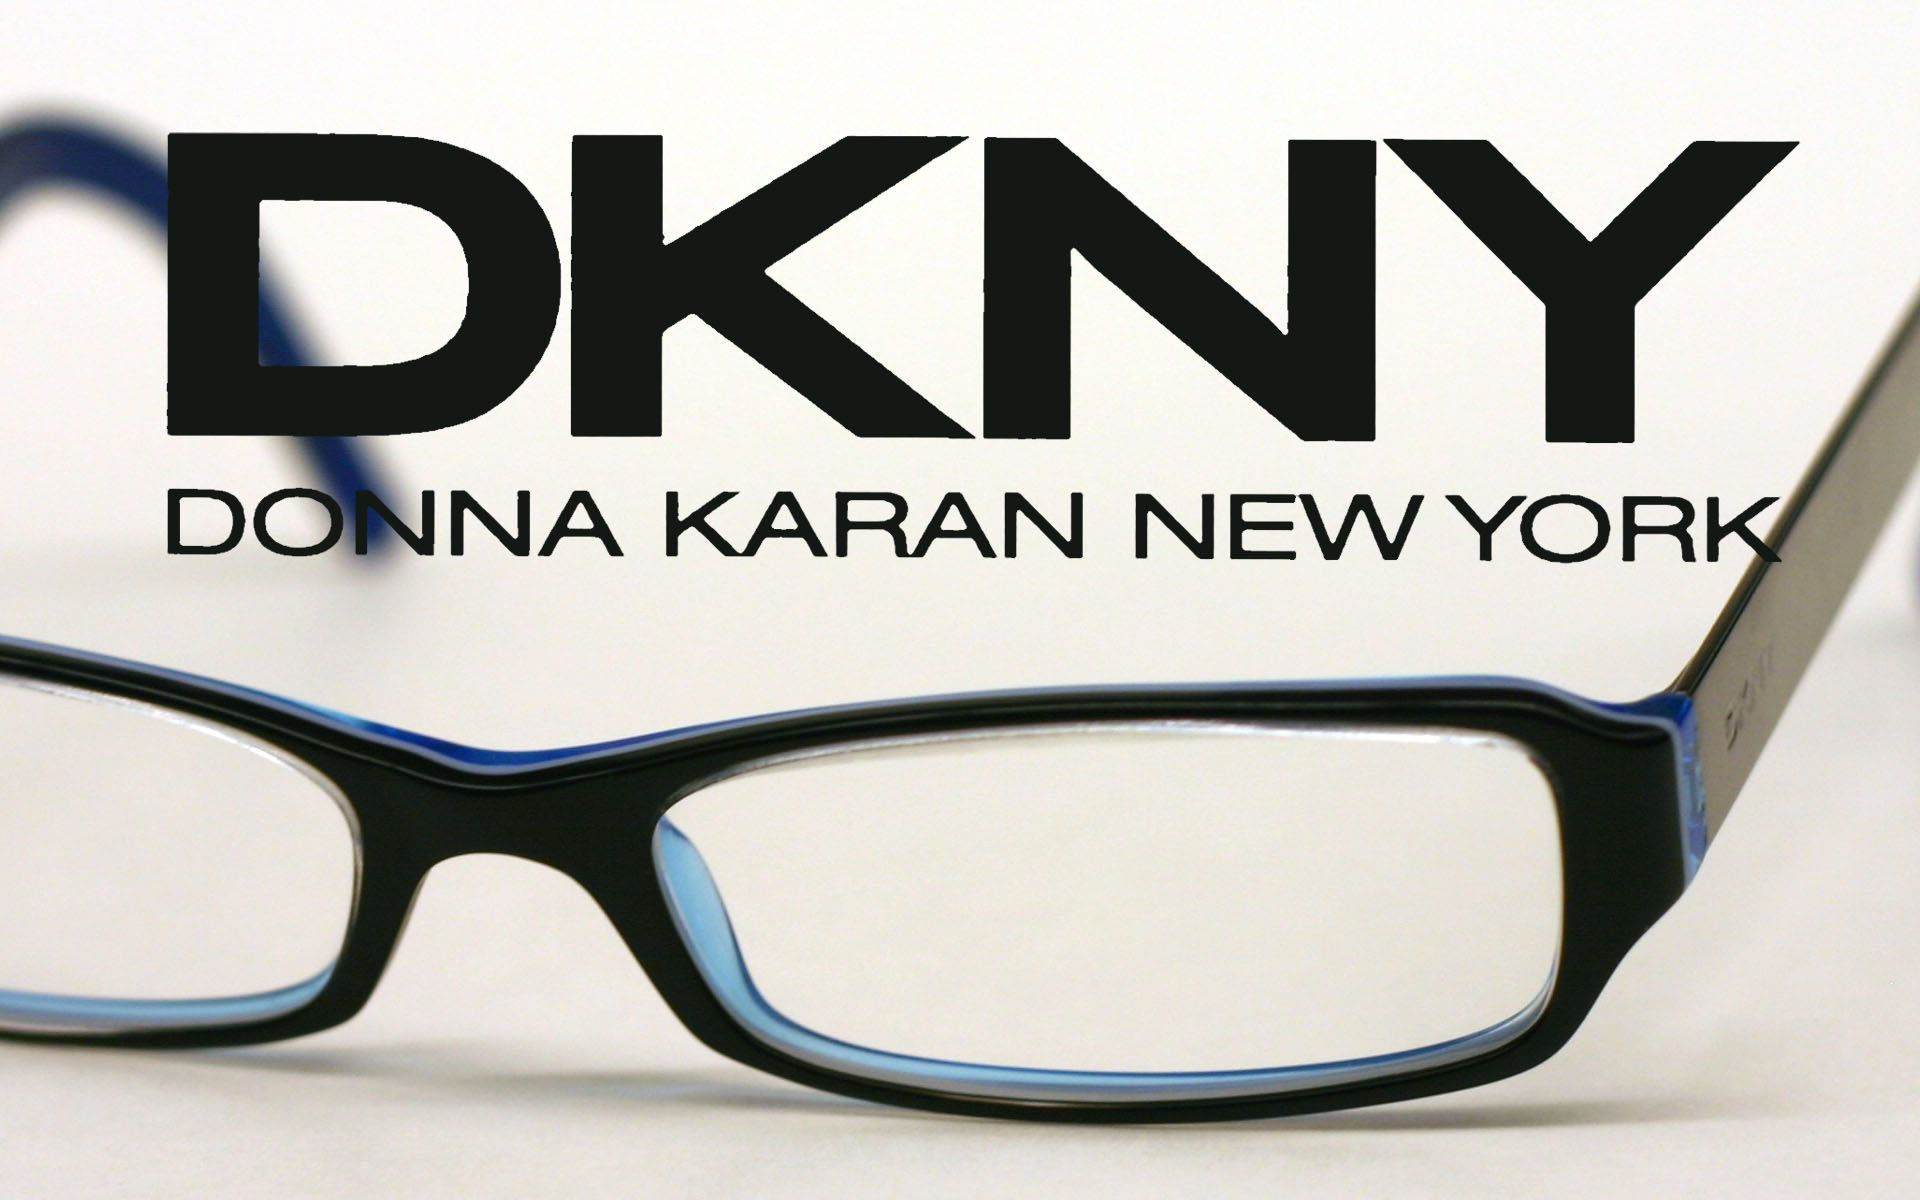 highly fashionable dkny glasses black outer frame and blue inside - Dkny Eyeglass Frames